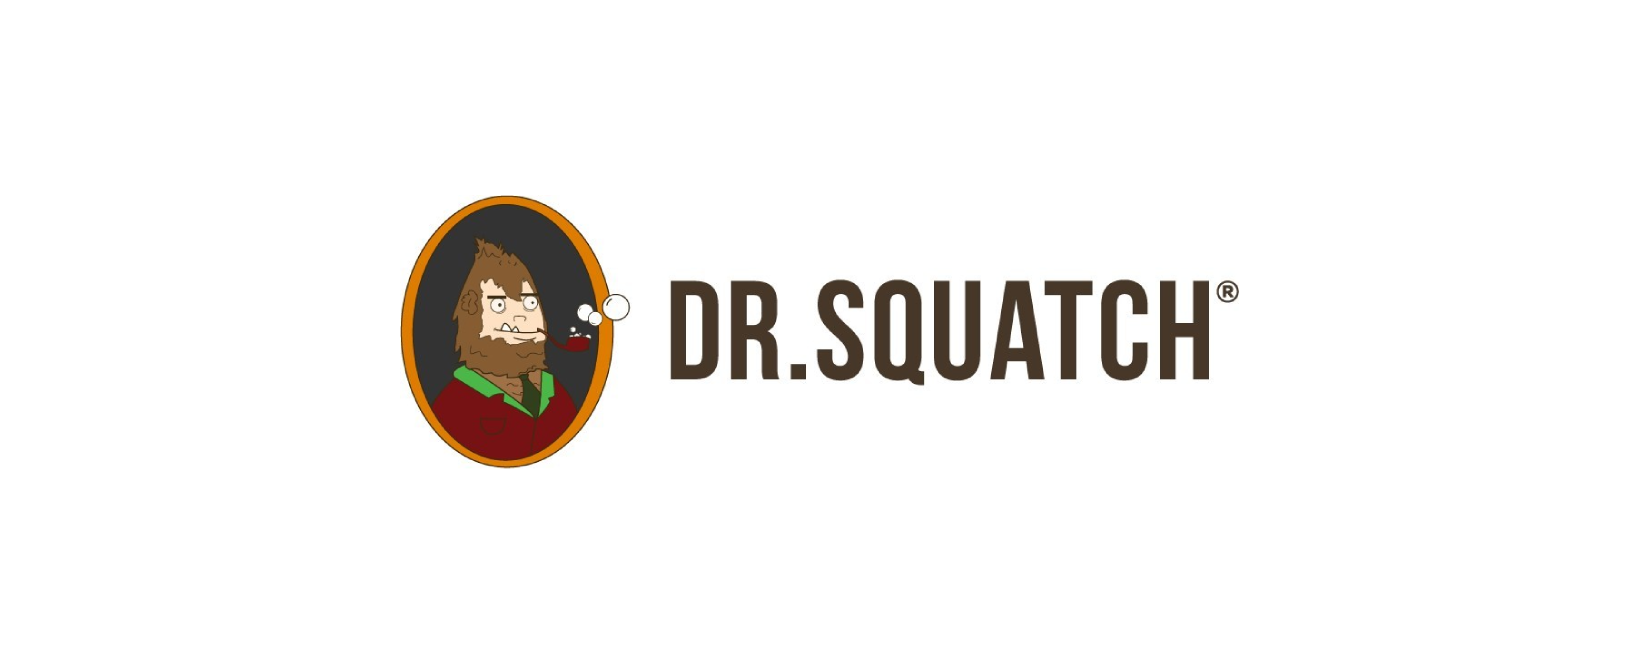 Dr Squatch Review - Well-Groomed Men's Best Friend